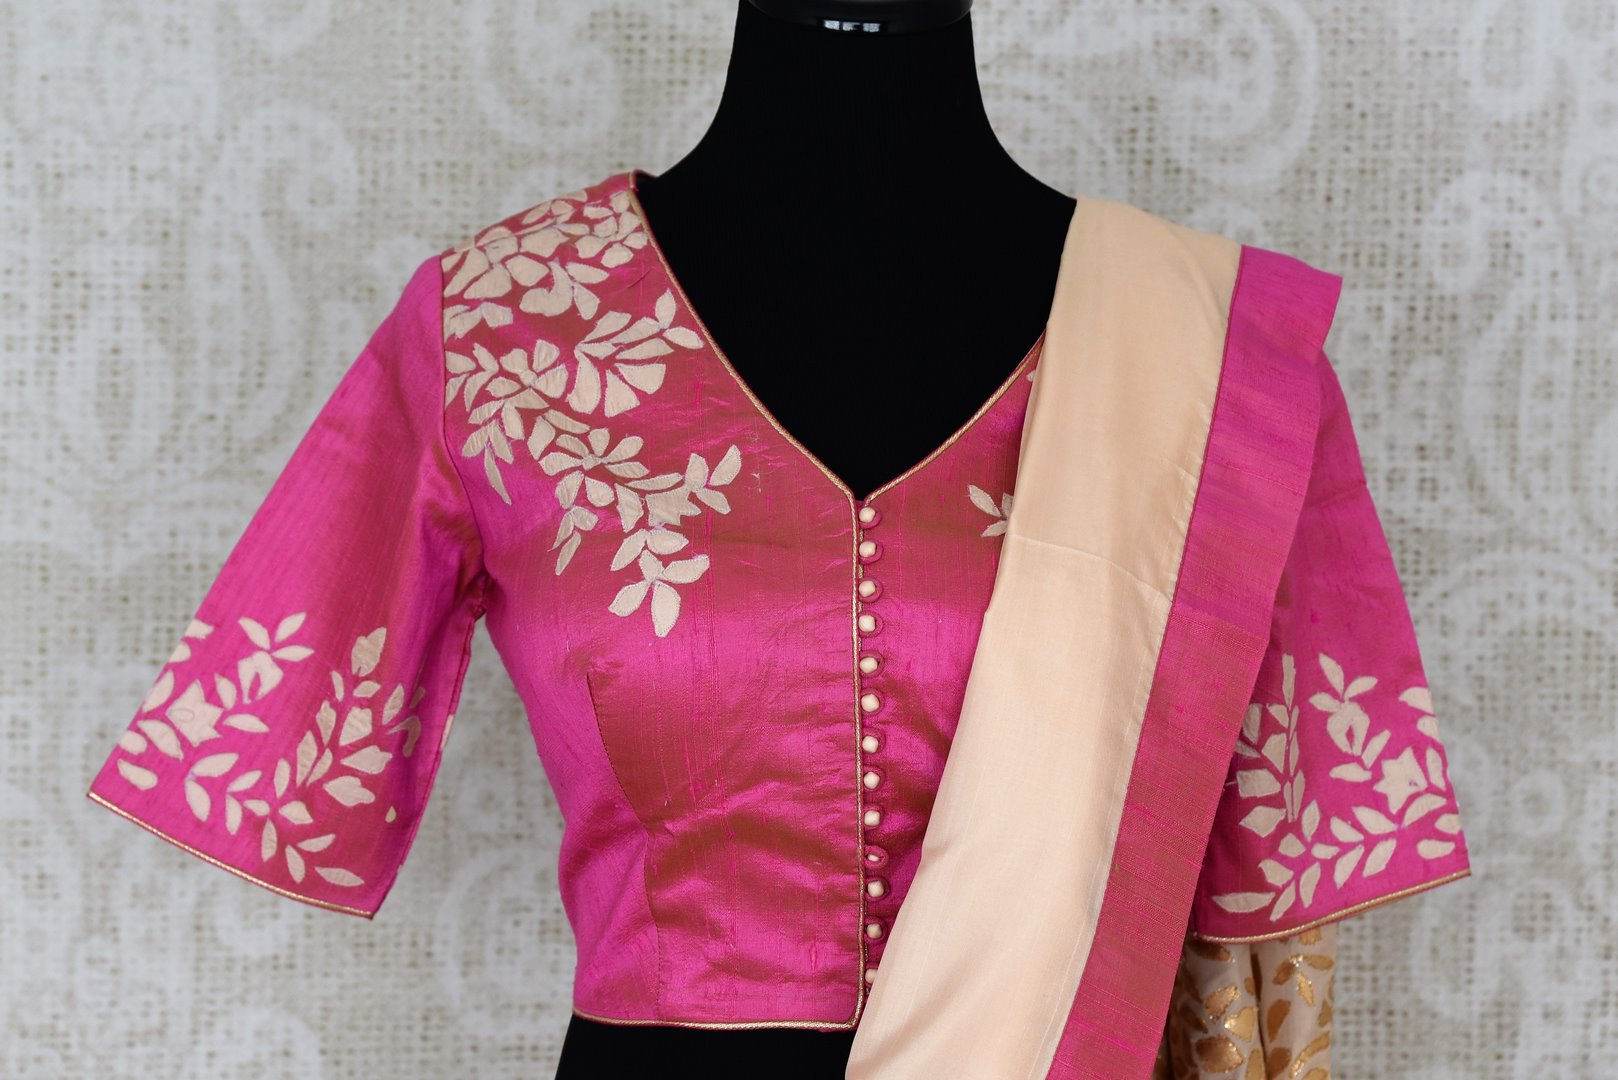 Peach applique work silk sari buy online in USA. The saree comes with a stunning pink sari blouse which elevates the style quotient of the saree. If you are looking for Indian designer saris in USA, then Pure Elegance clothing store is your one-stop solution, shop now.-blouse pallu